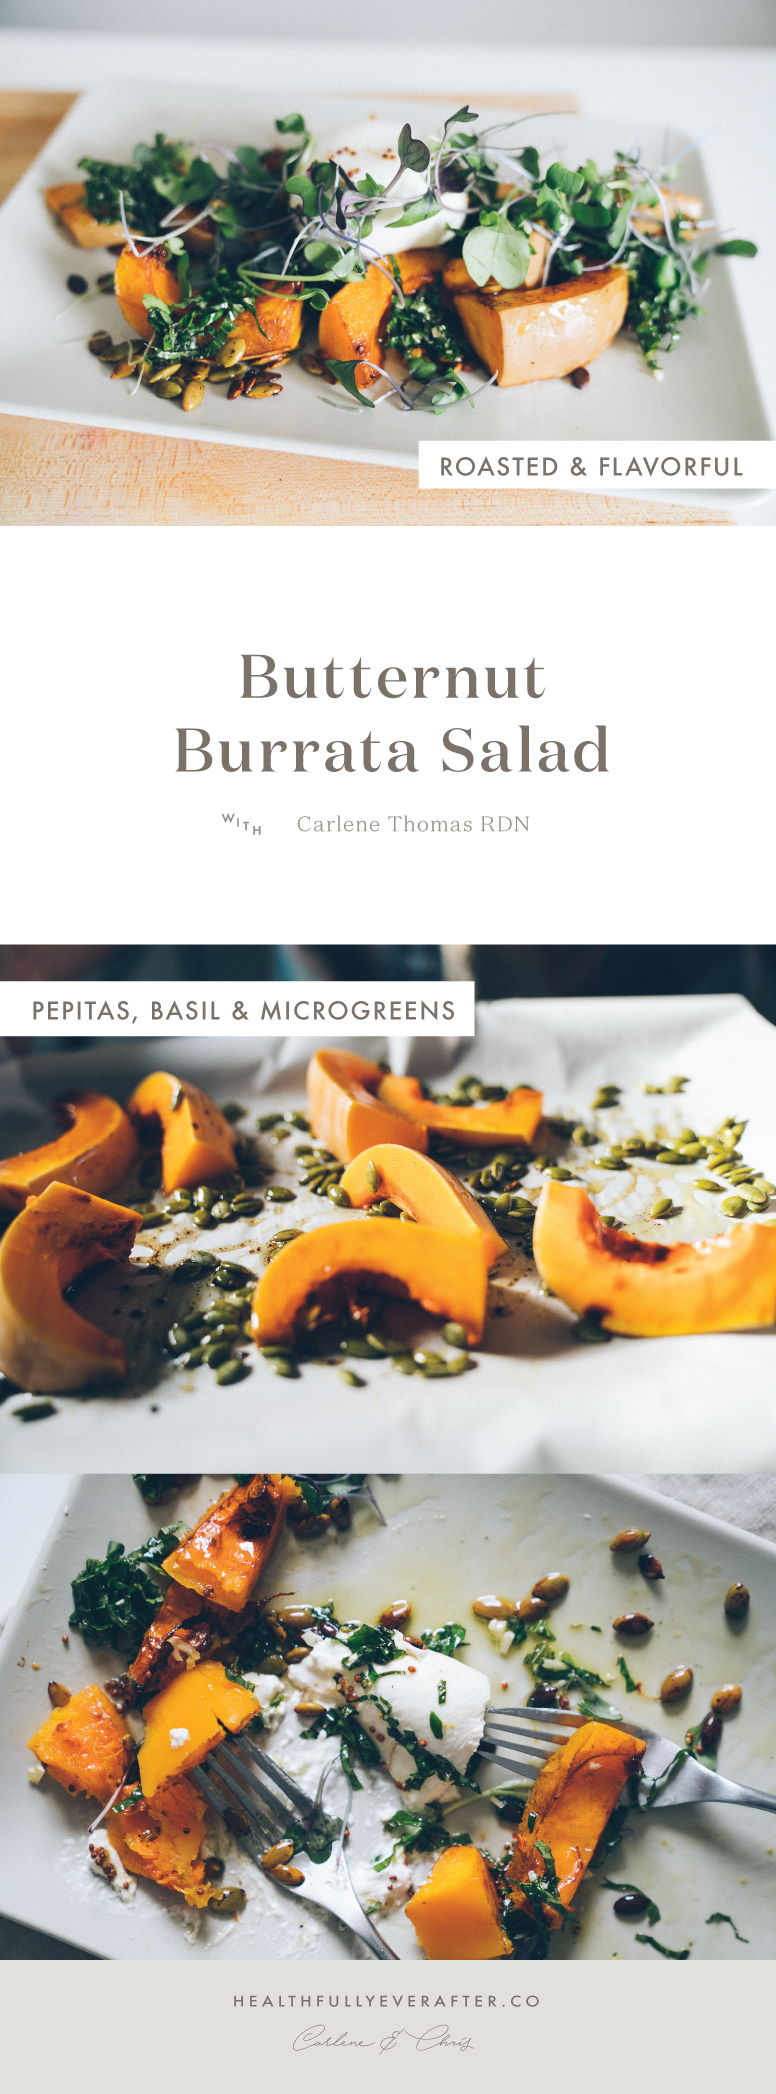 Late November 2016 Menu butternut squash burrata salad